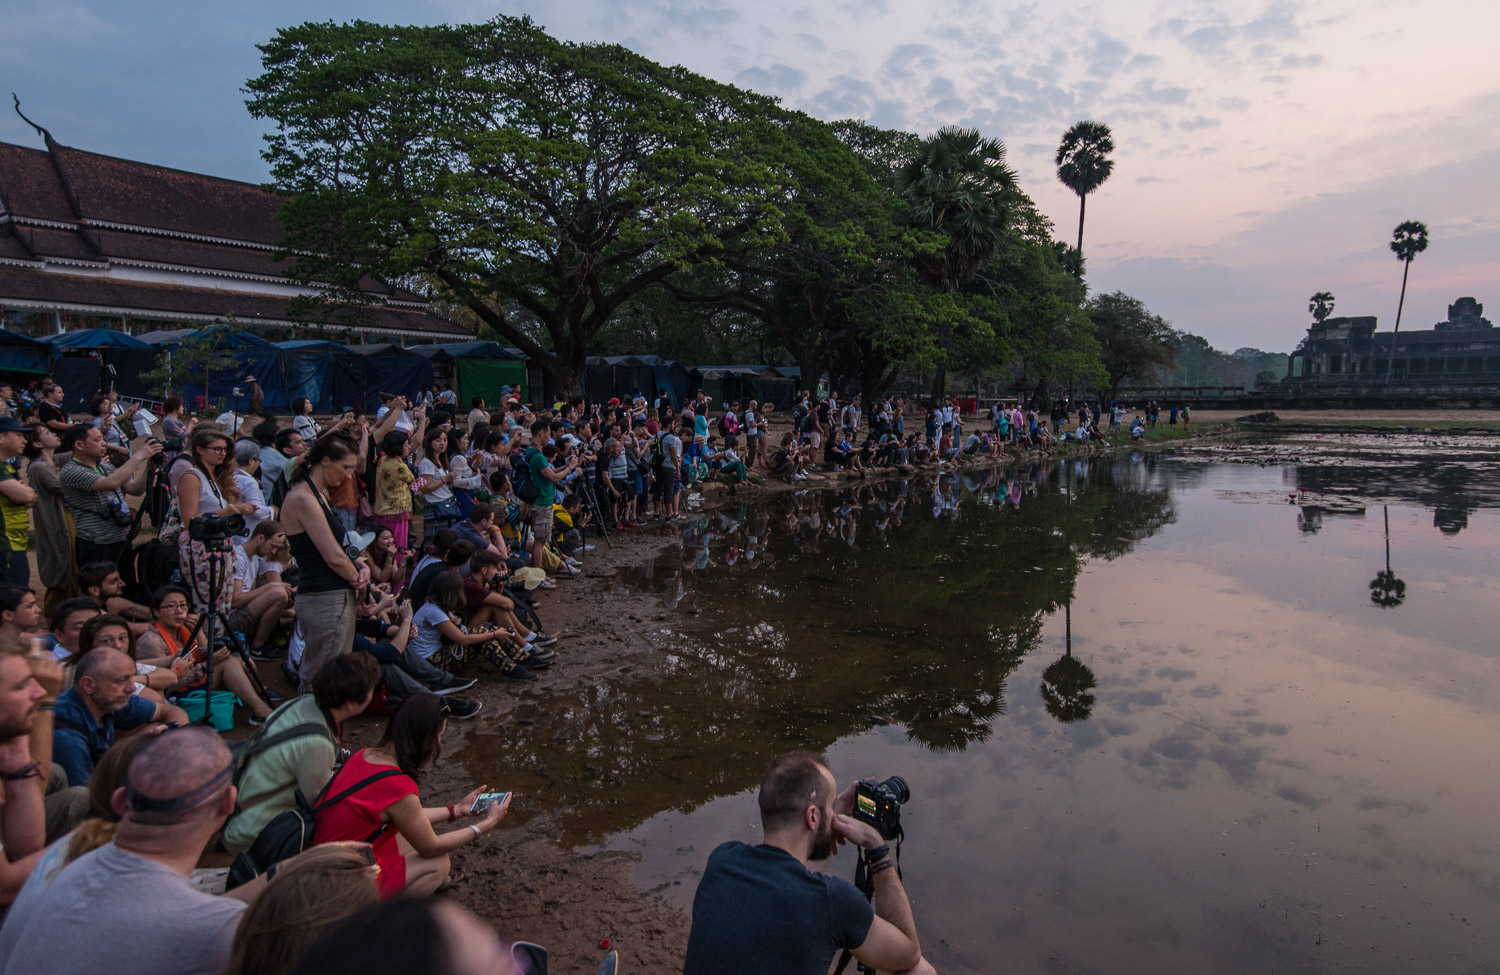 The real Angkor Wat sunrise: Crowds wait anxiously to greet the sun